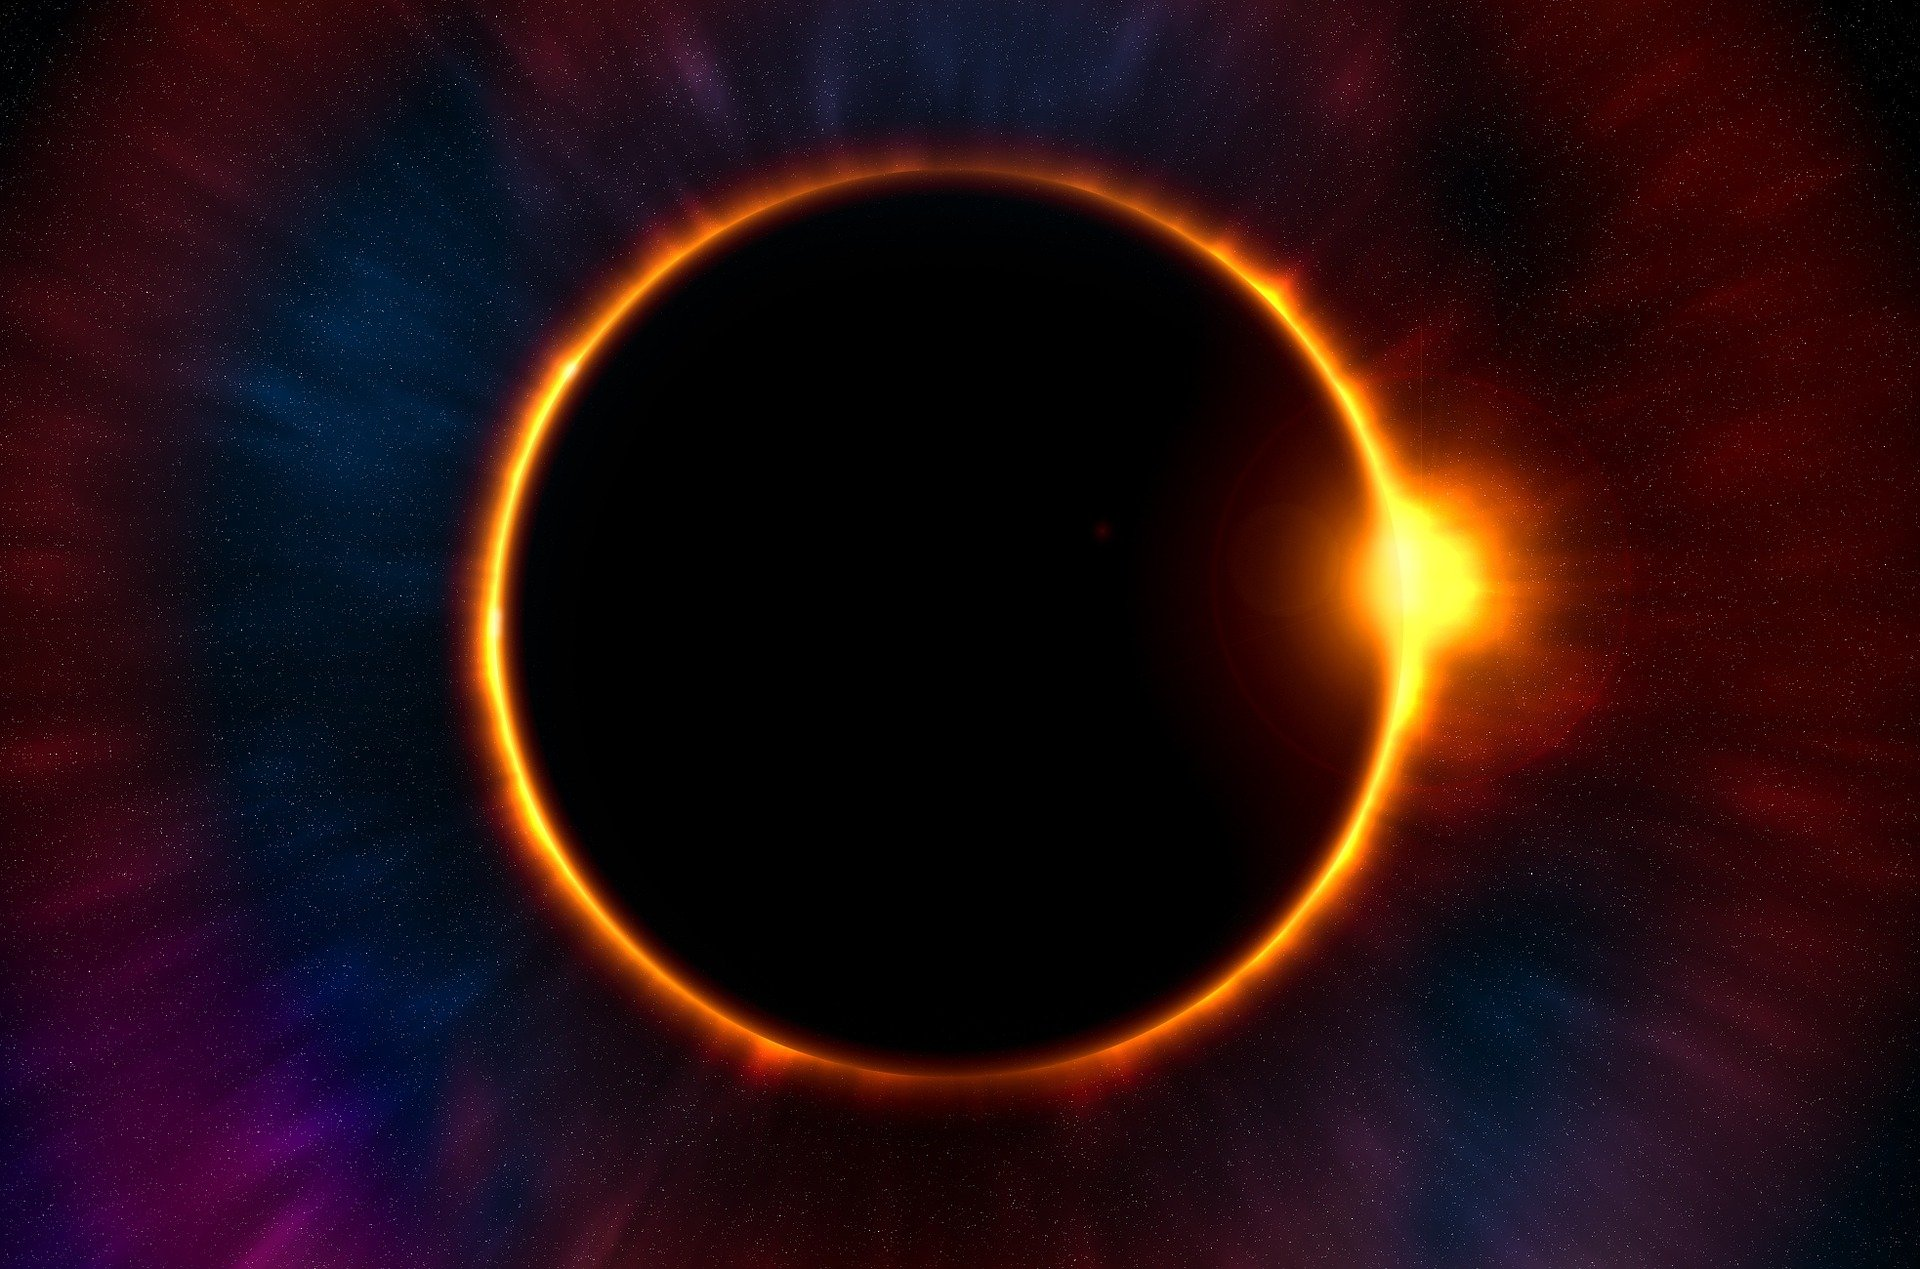 eclipse-1492818_1920.jpg